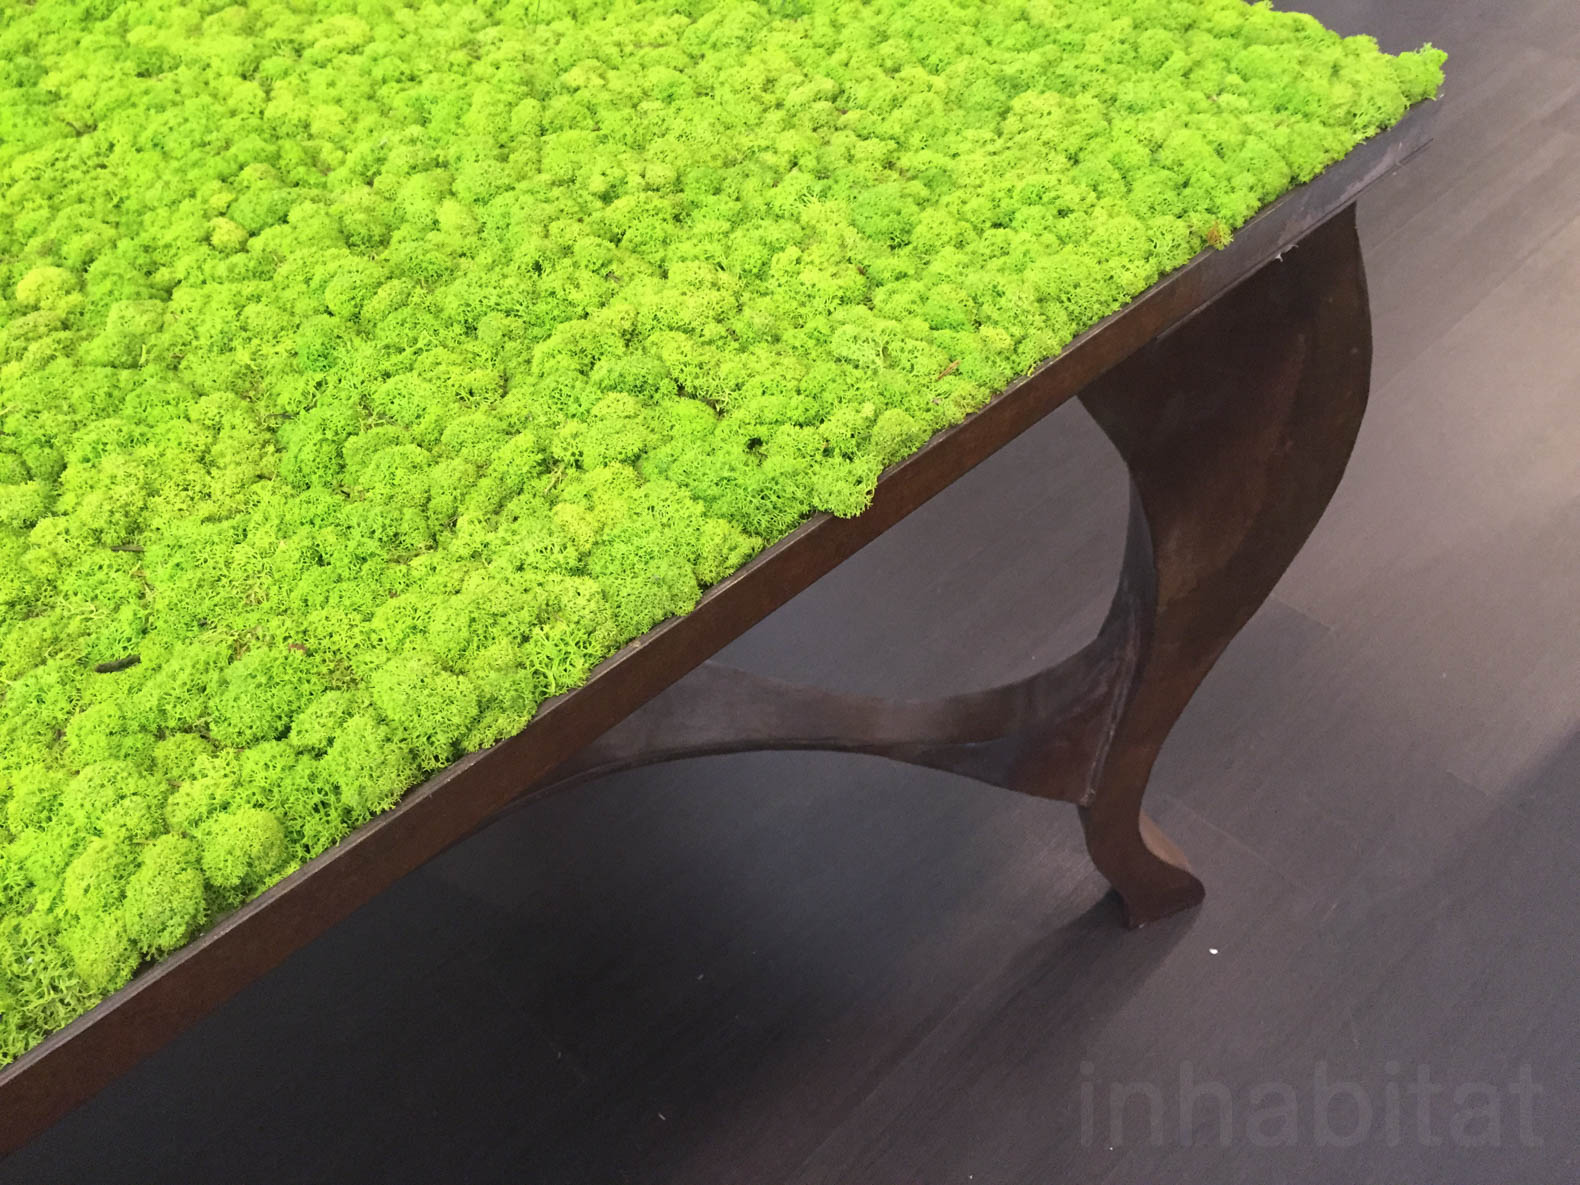 Green Furniture | Inhabitat - Green Design, Innovation ...